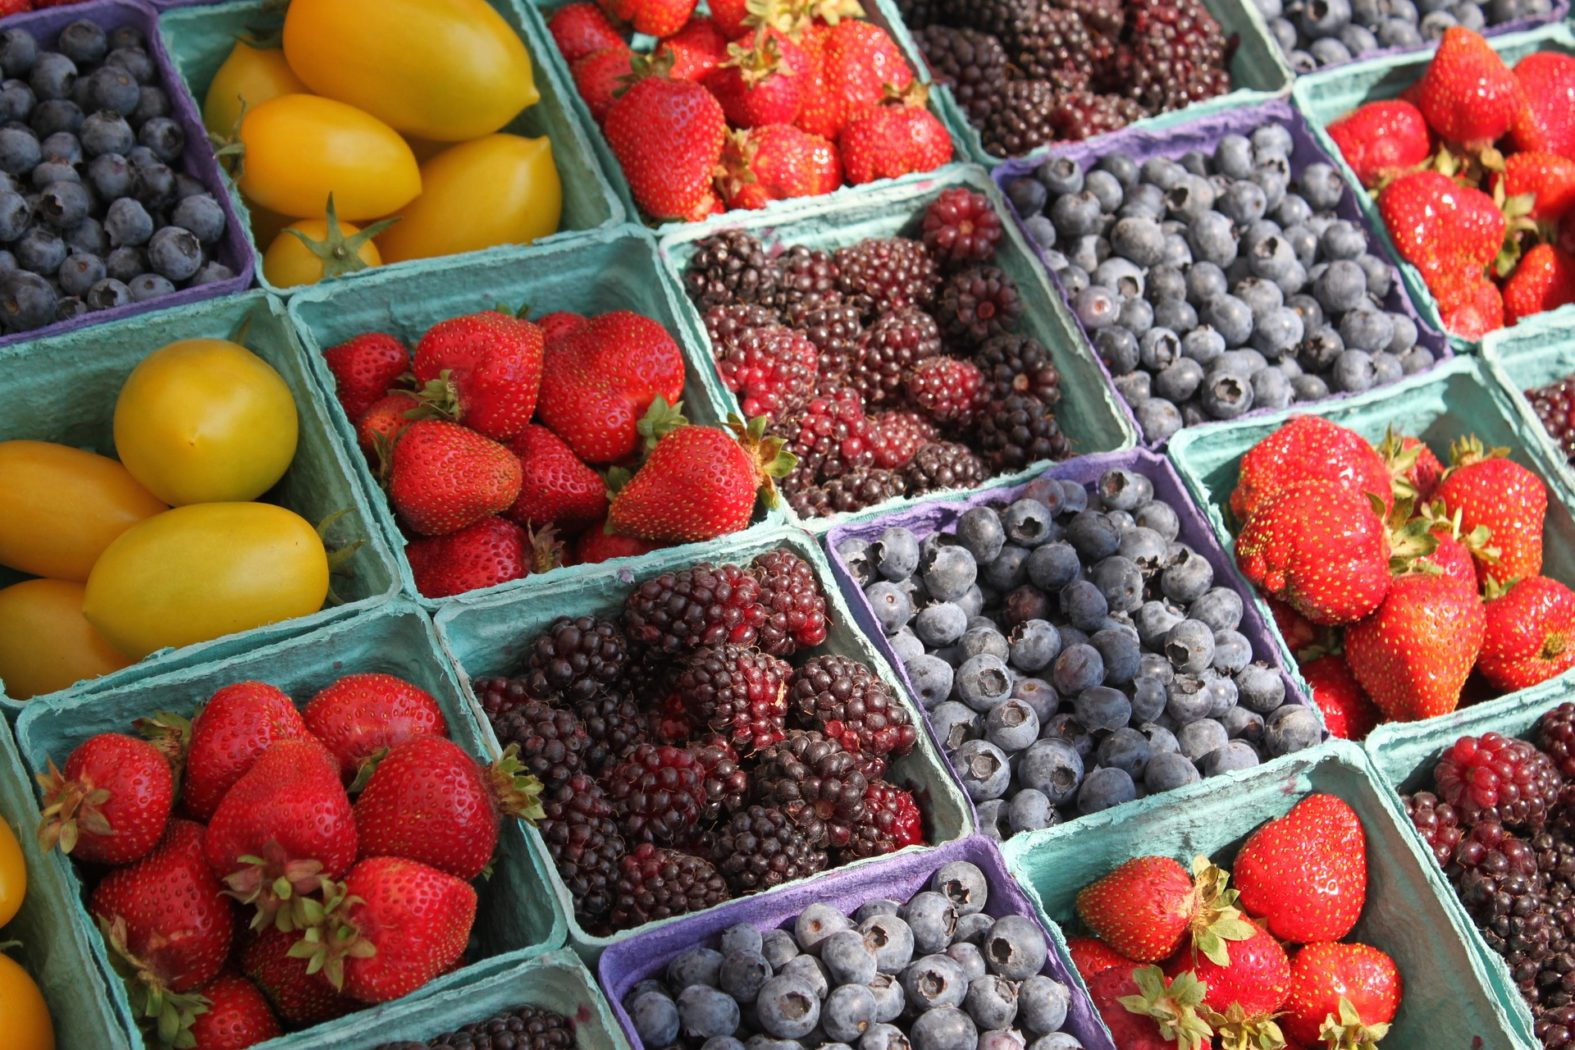 strawberries, blueberries, blackberries and cherry tomatoes during a summer harvest